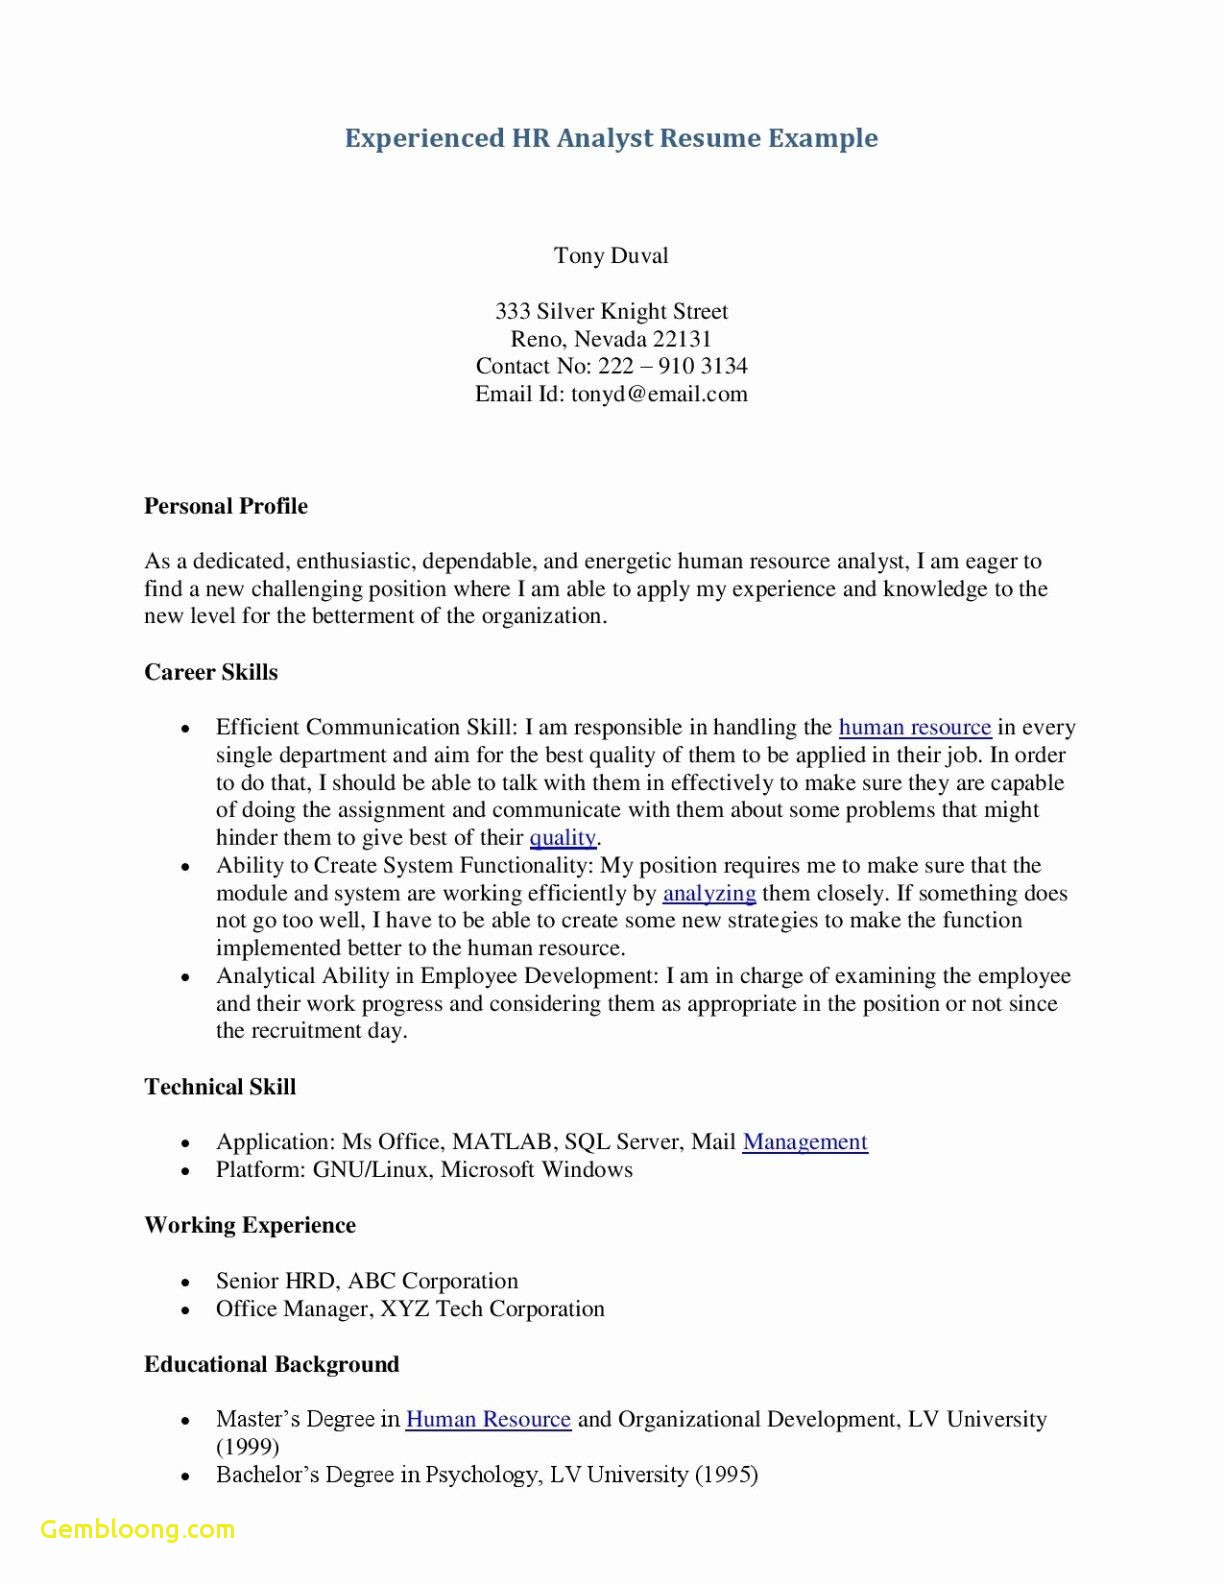 Rental Cover Letter Template - Rent Application Cover Letter Tenancy Letter Template Uk Fresh